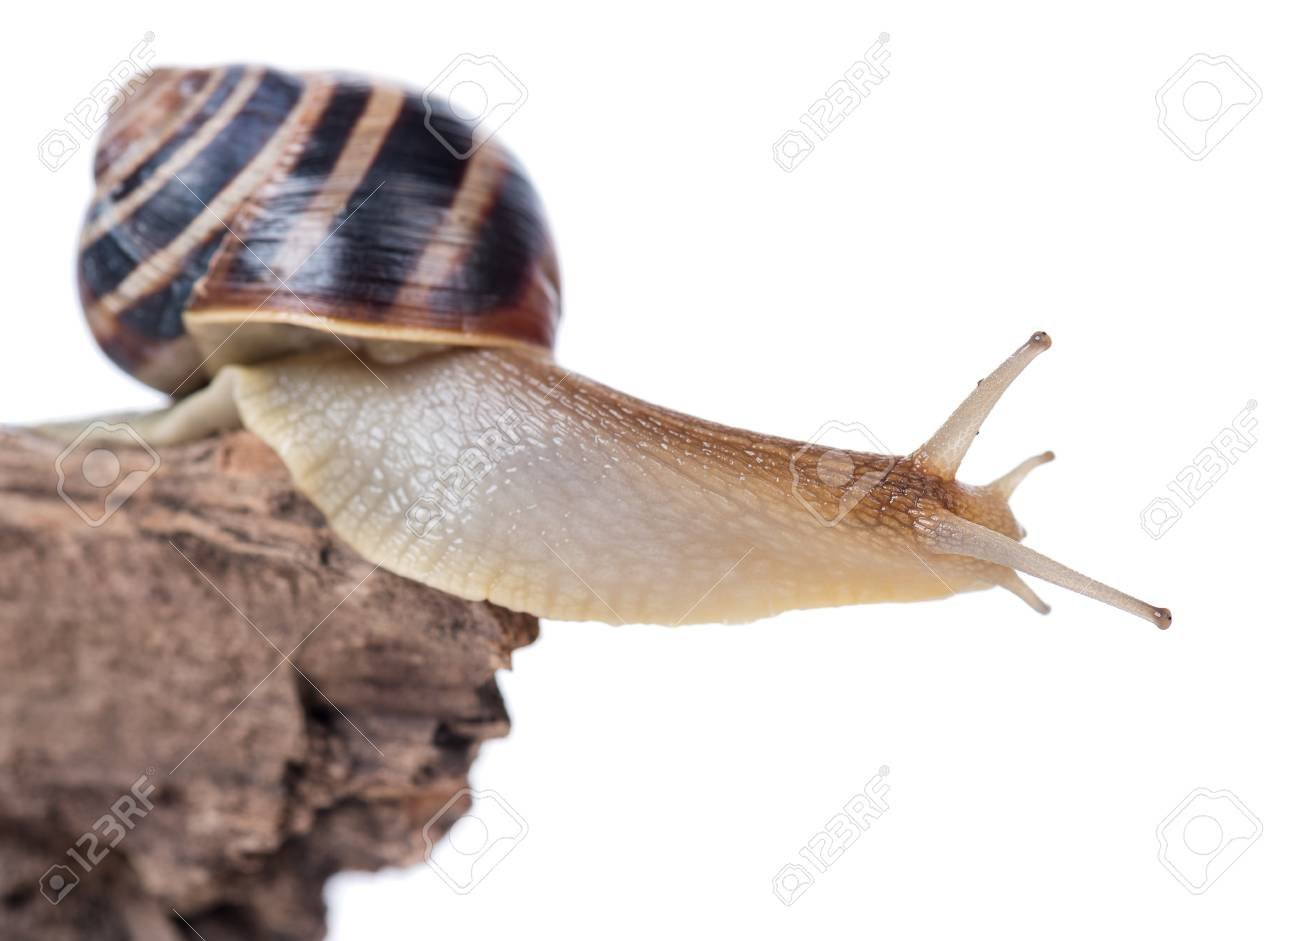 Bright Cute Snail On The Old Stub Isolated Over White Background 1300x941